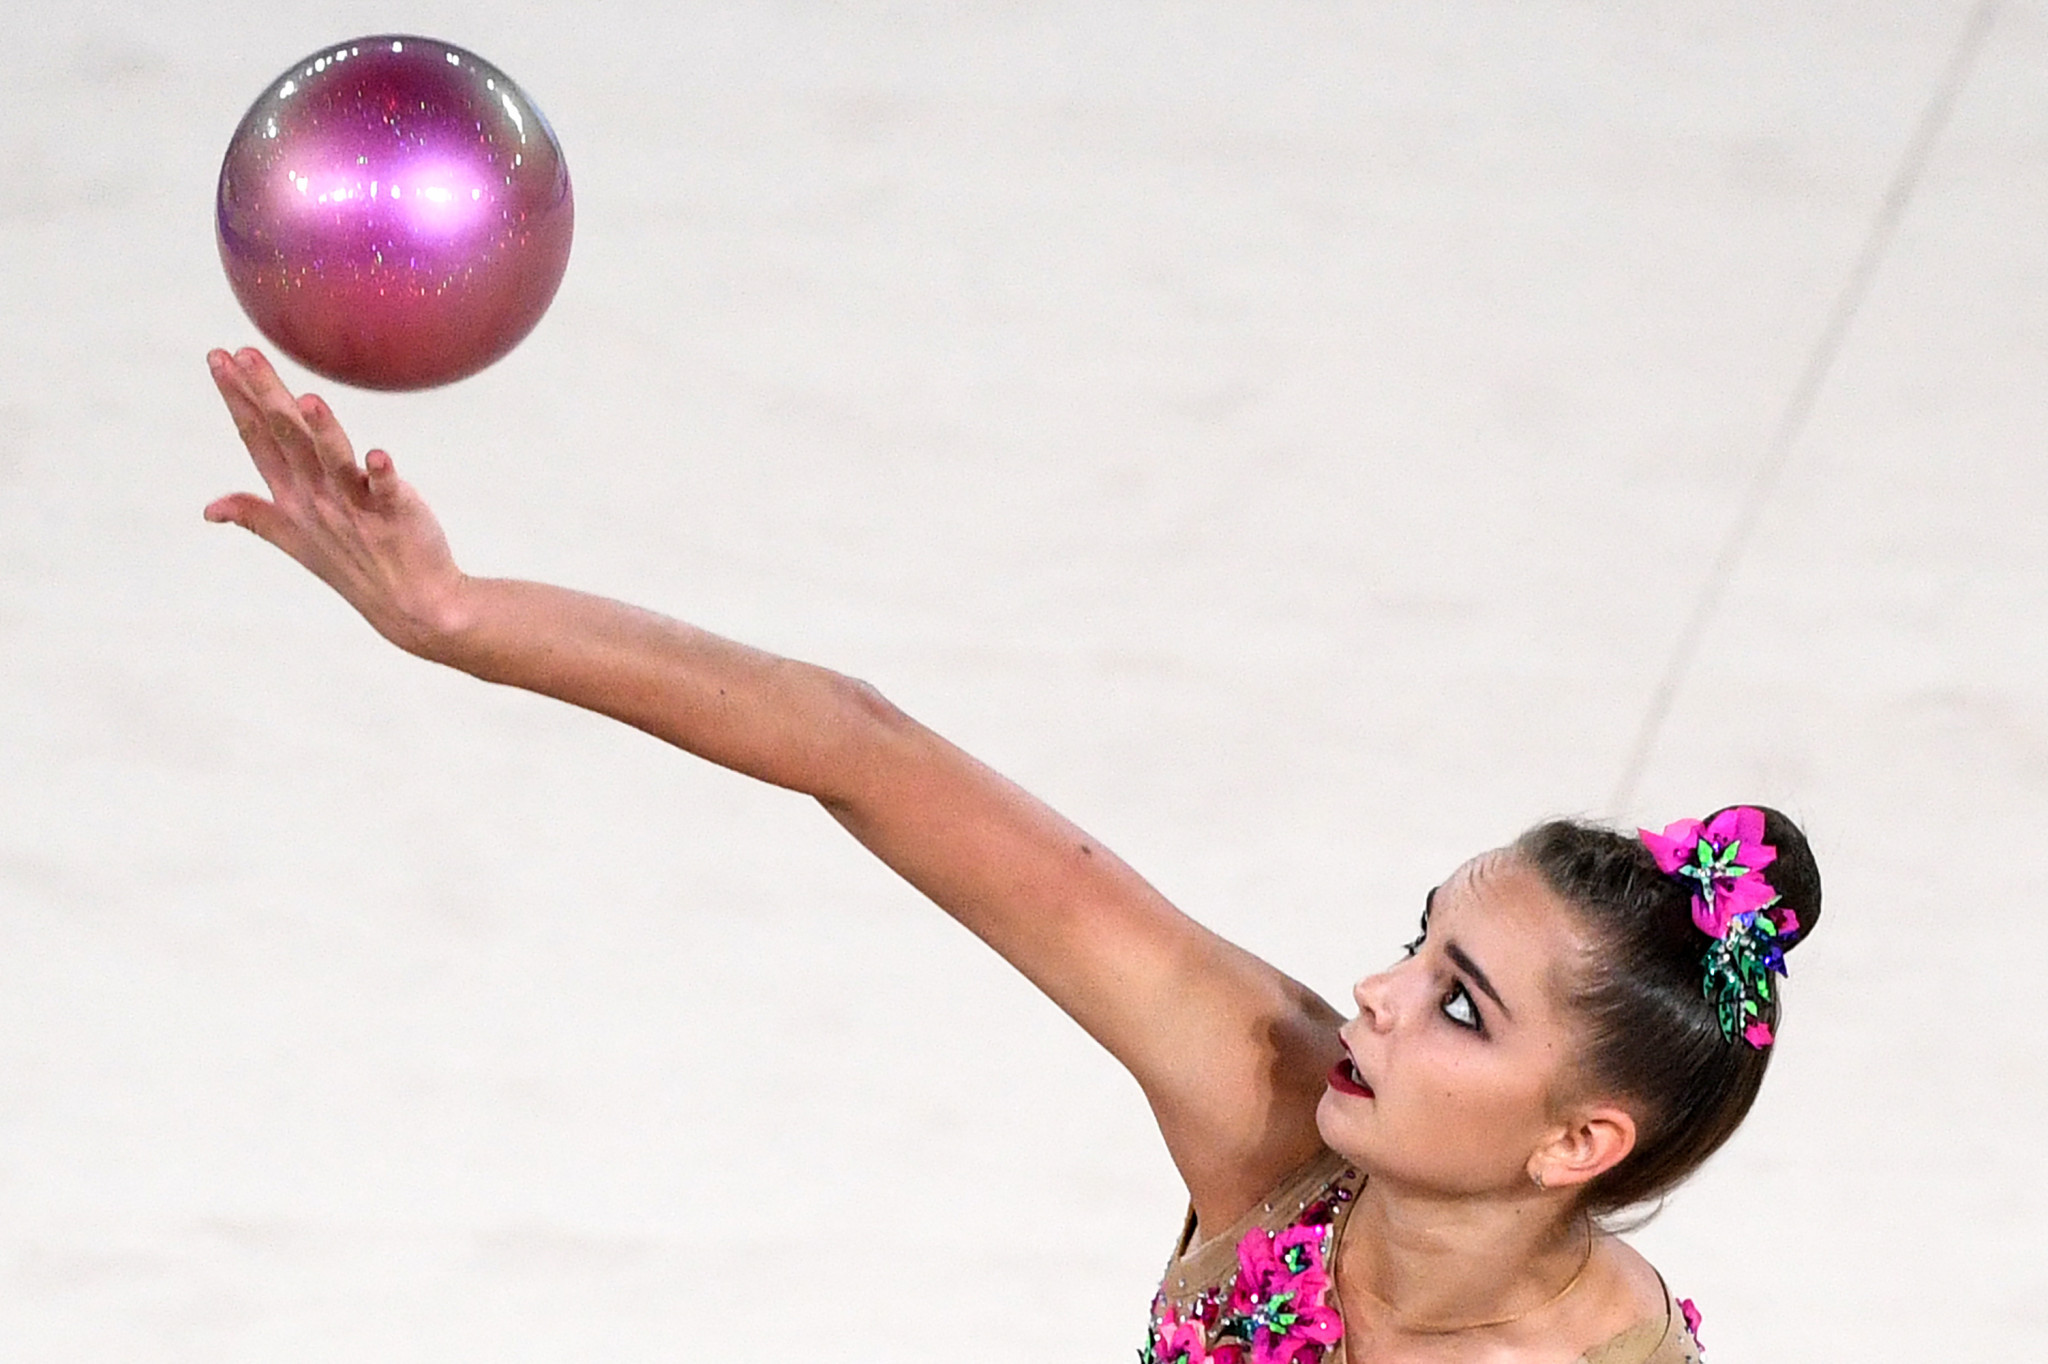 Dina Averina won the gold medal in the individual all-around in Moscow ©Getty Images